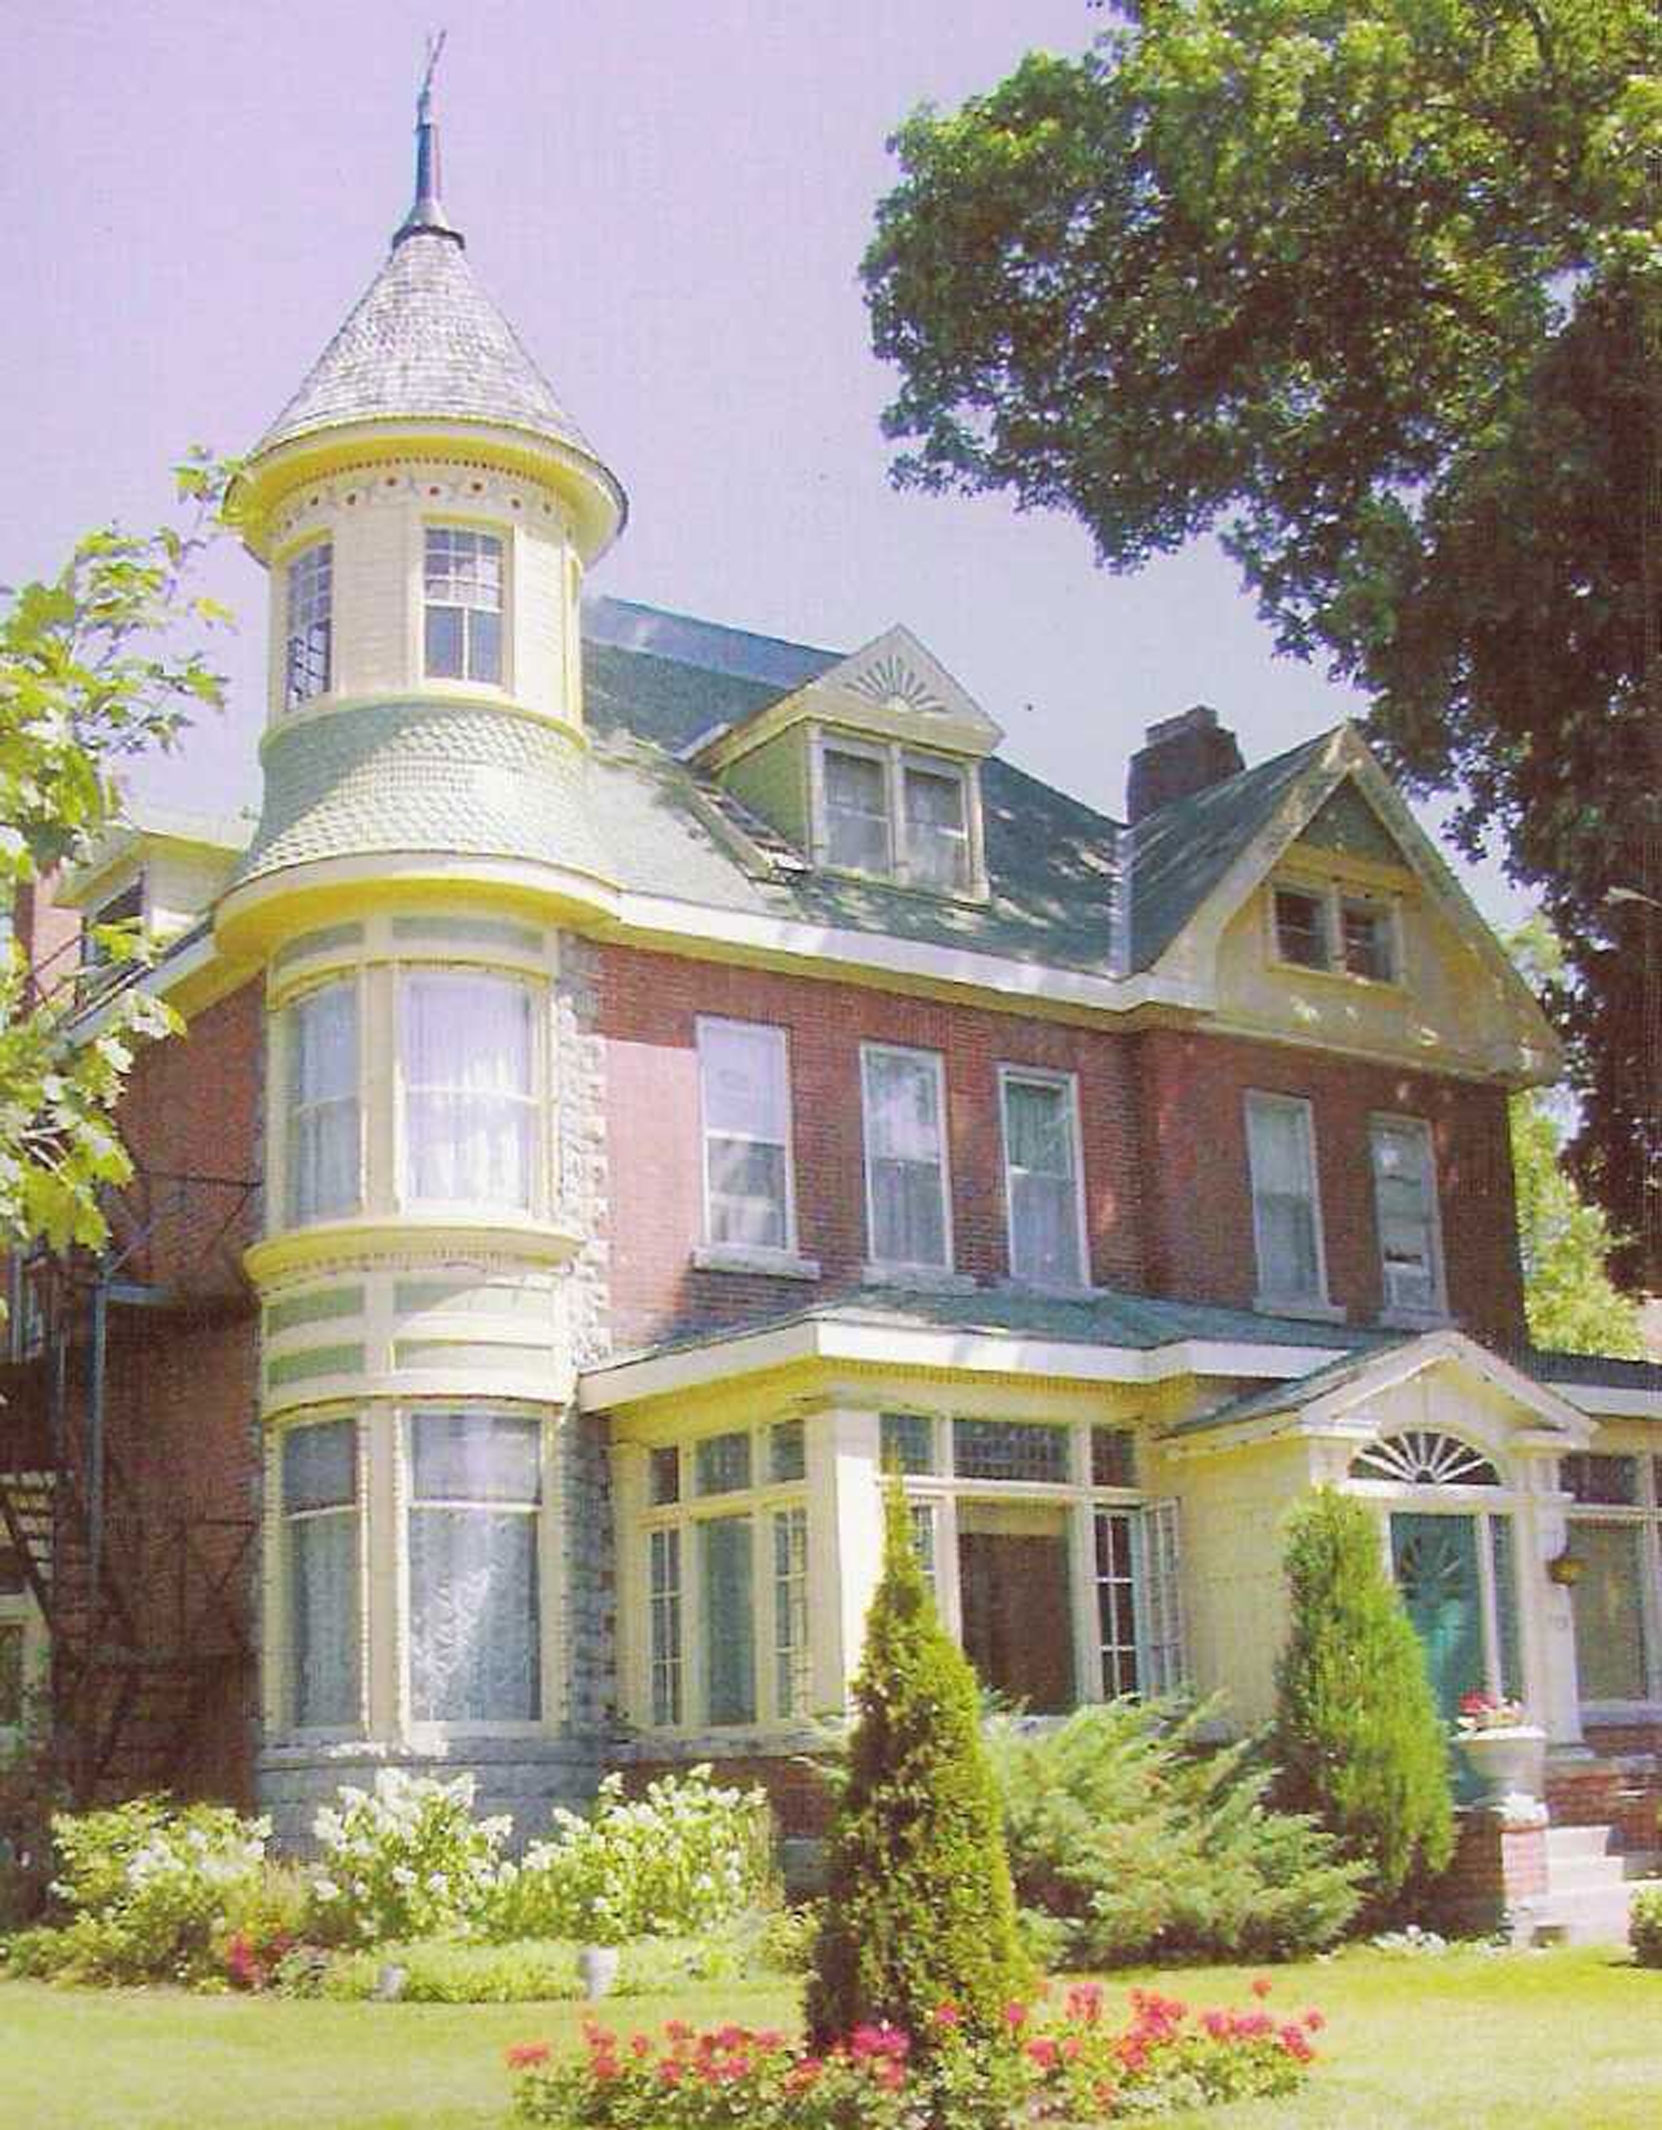 David Martin Butcart's former house at 919 5th Avenue East, Owen Sound, Ontario is not the Butchart Estate B&B (Photo courtesy of Butchart Estate B&B)